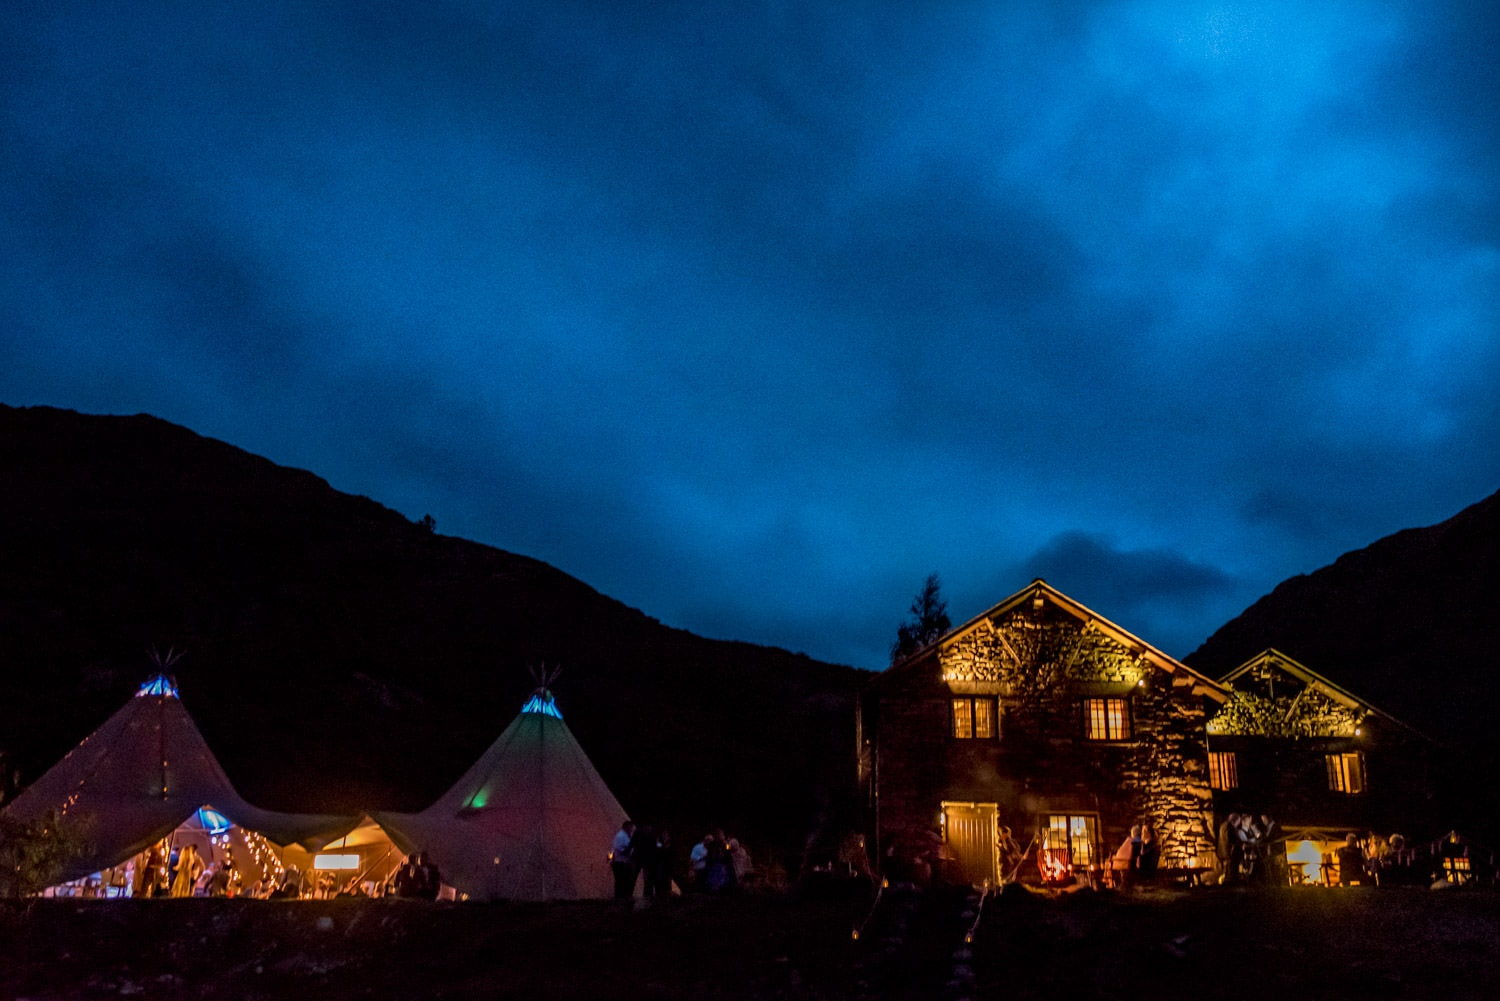 Coniston Coppermine Cottages at night for a wedding with a Tipi